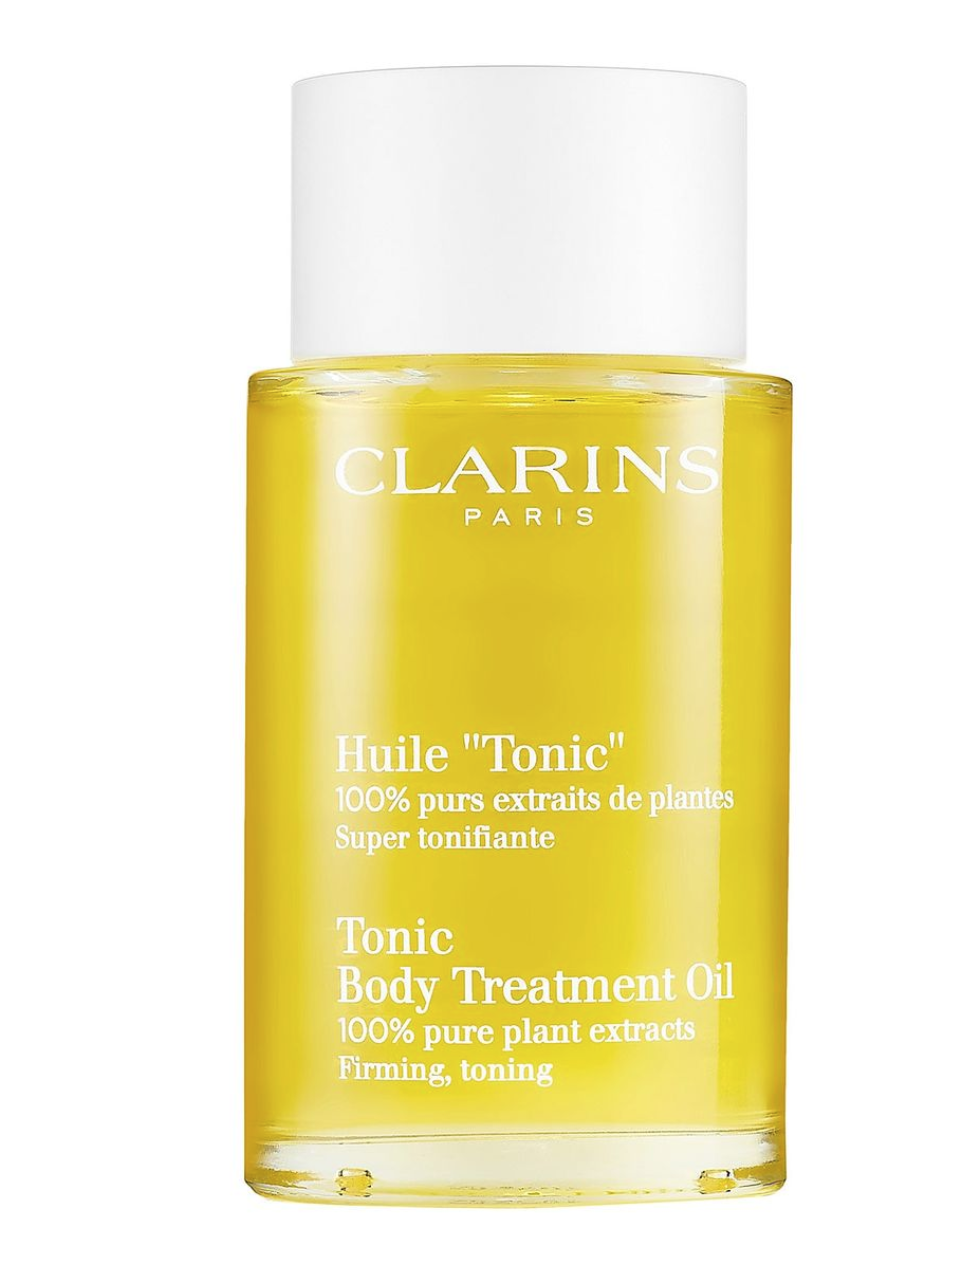 Dầu trị rạn da - Clarins Tonic Body Treatment Oil.